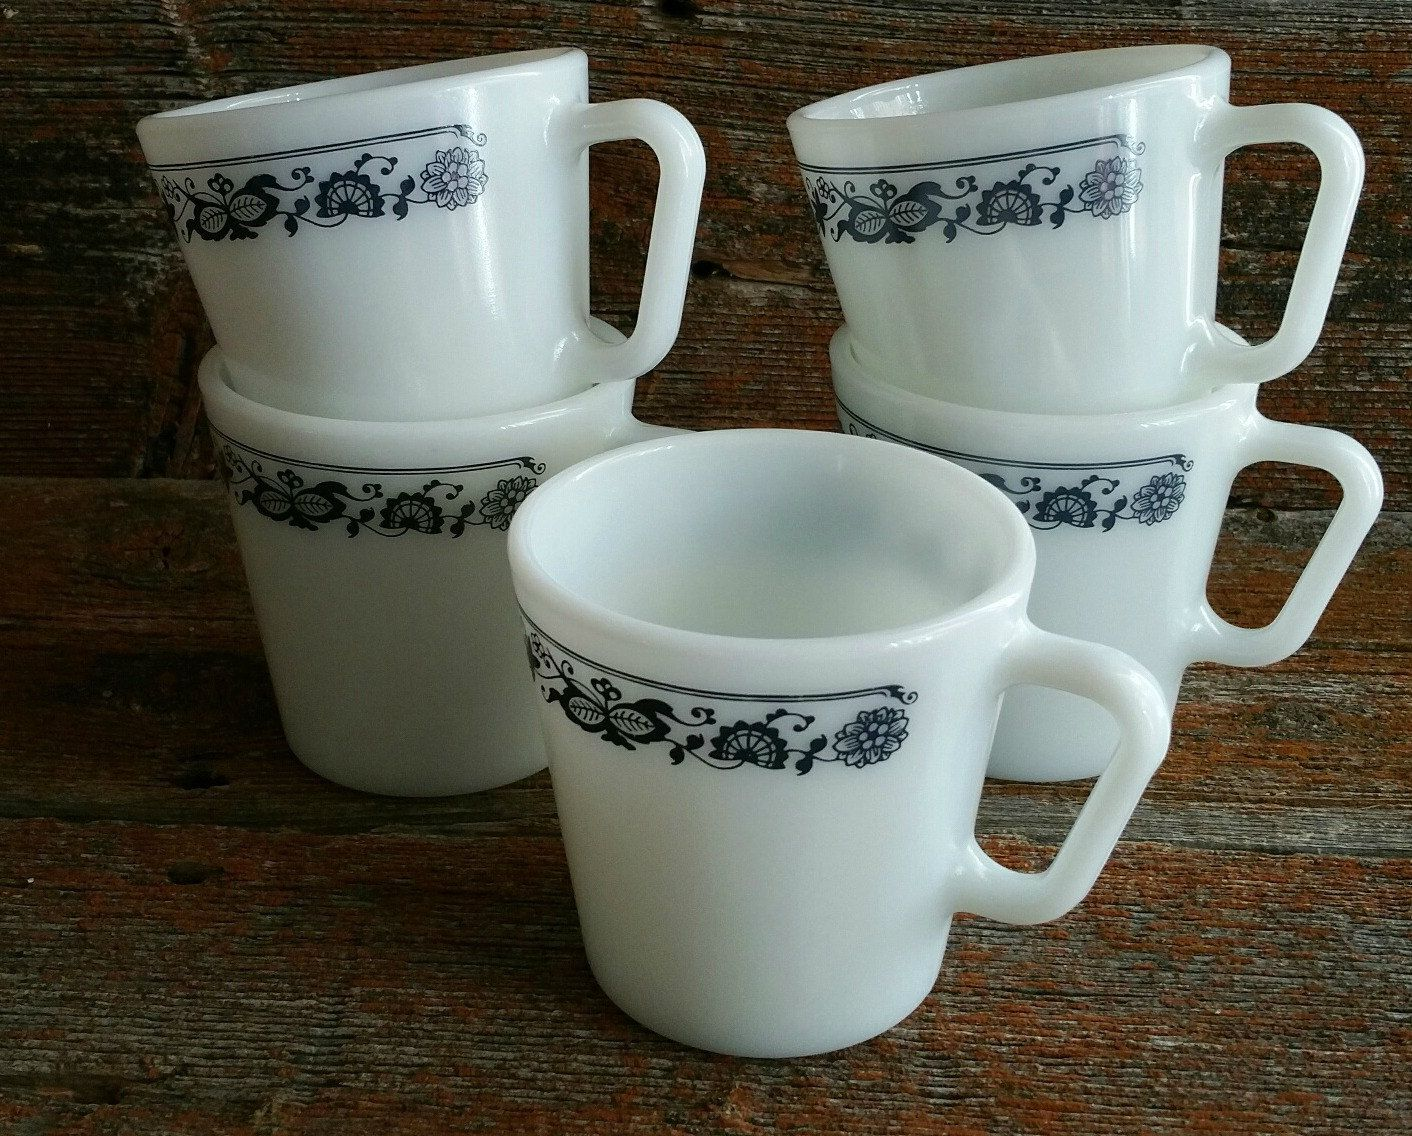 Vintage Pyrex Old Town Blue Coffee Mugs Set Of 5 Collectible By Emptynestvintage On Etsy